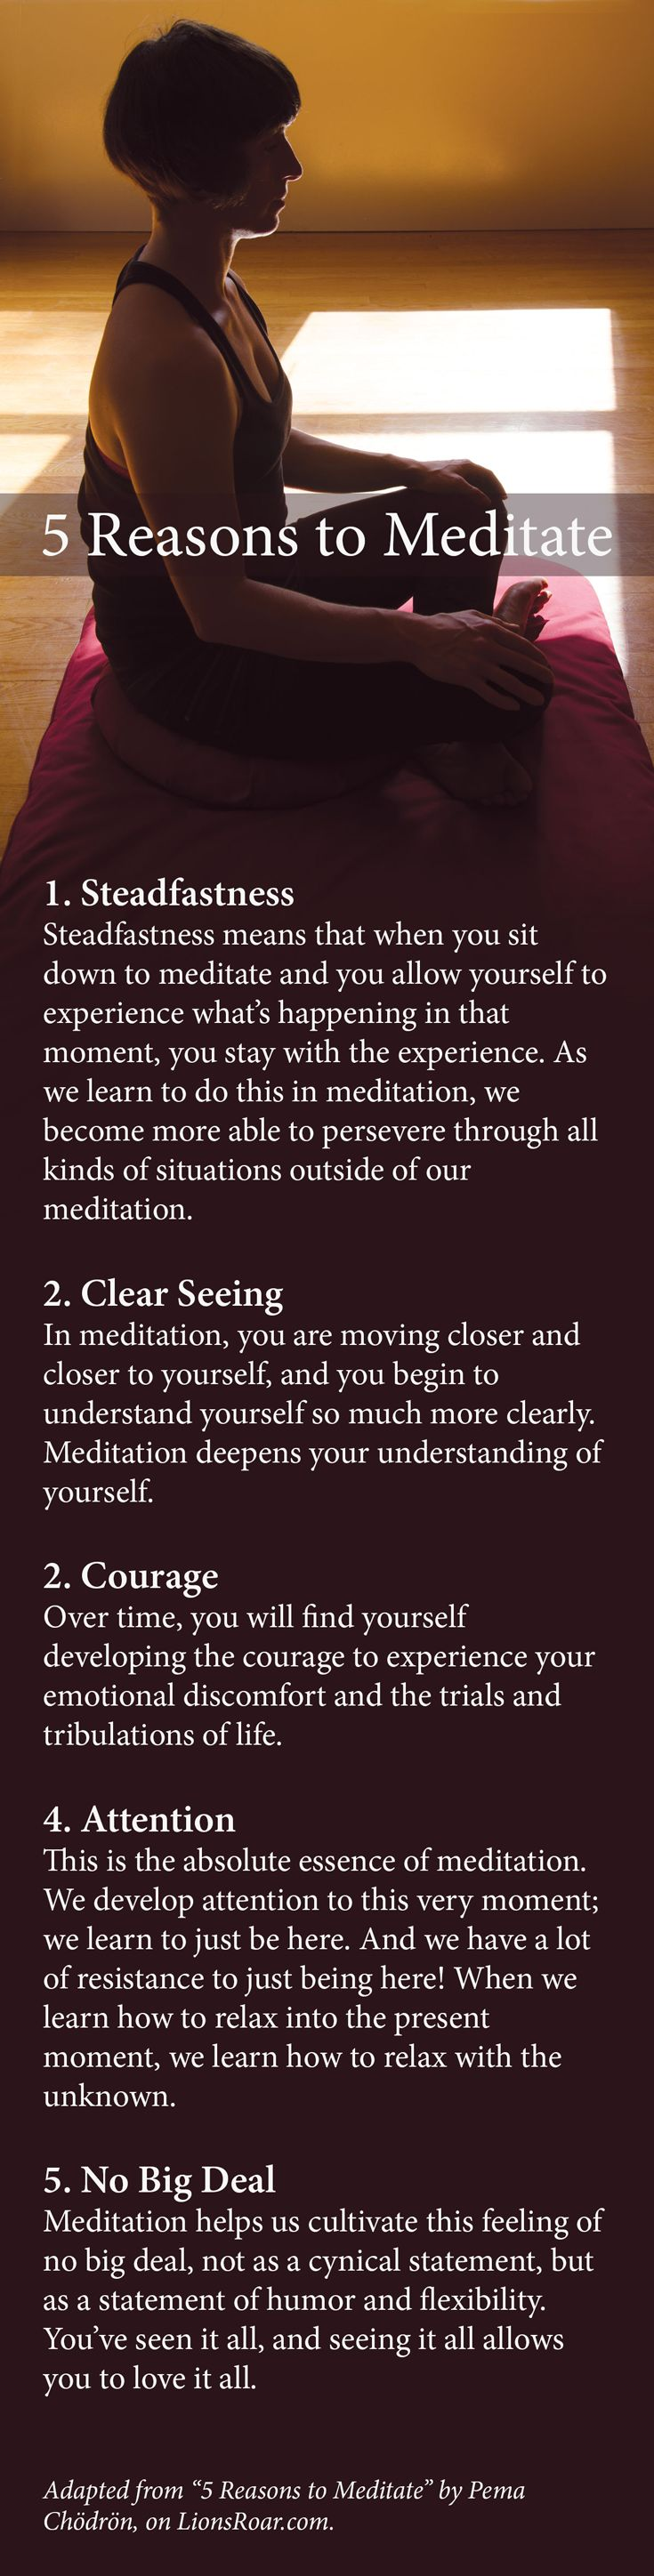 """Adapted from """"5 Reasons to Meditate,"""" by Pema Chödrön."""